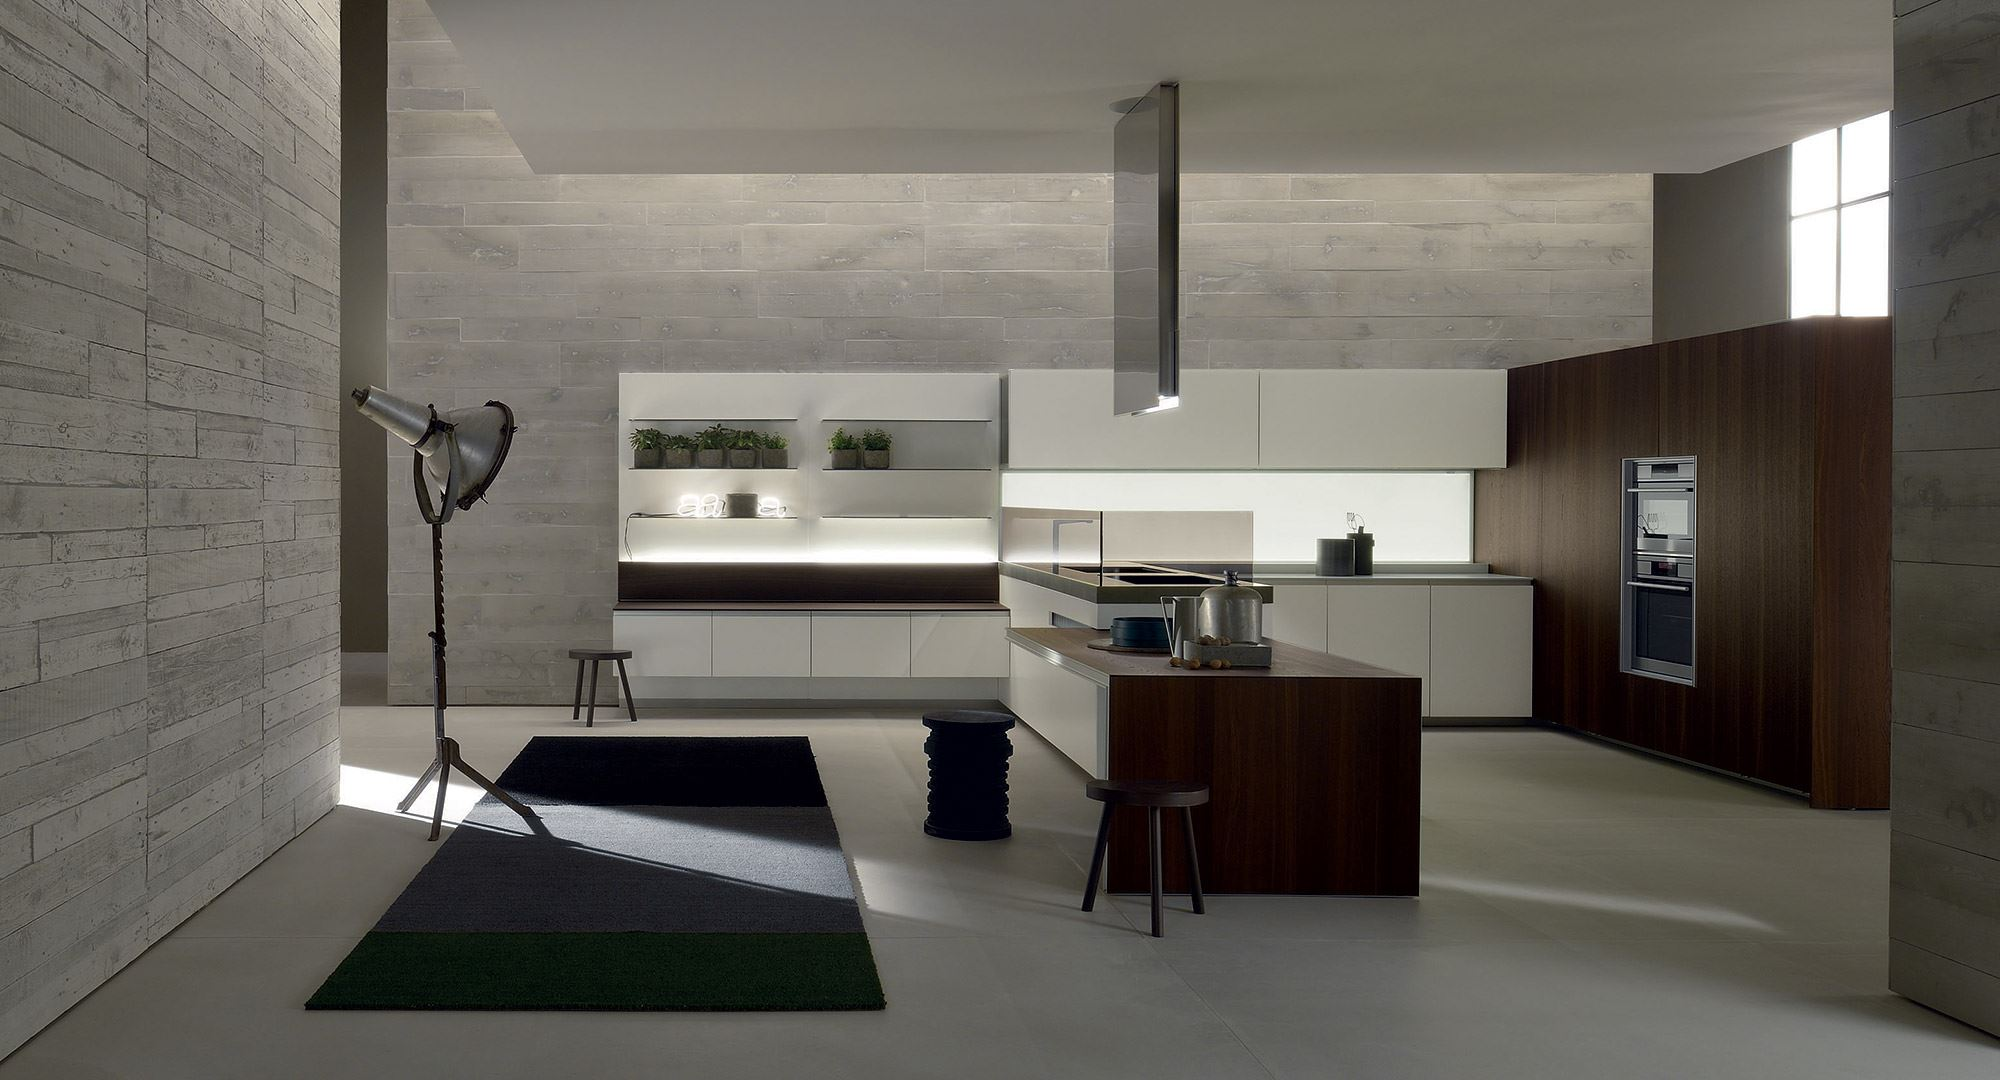 Cucine ernestomeda roma - Cucine decorate ...